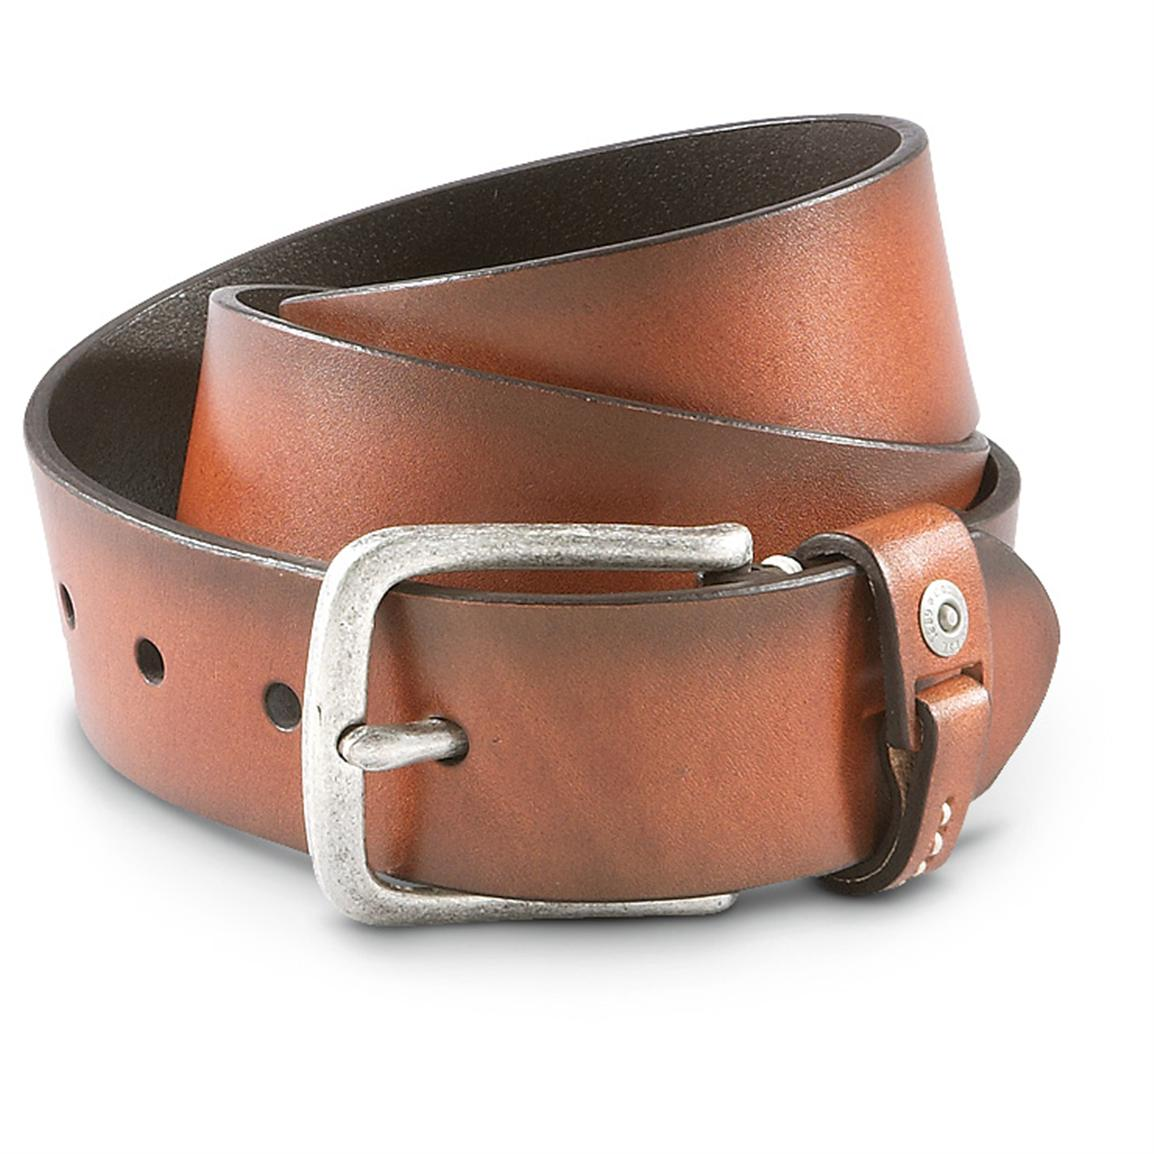 Carhartt® Rivet Belt, Brown